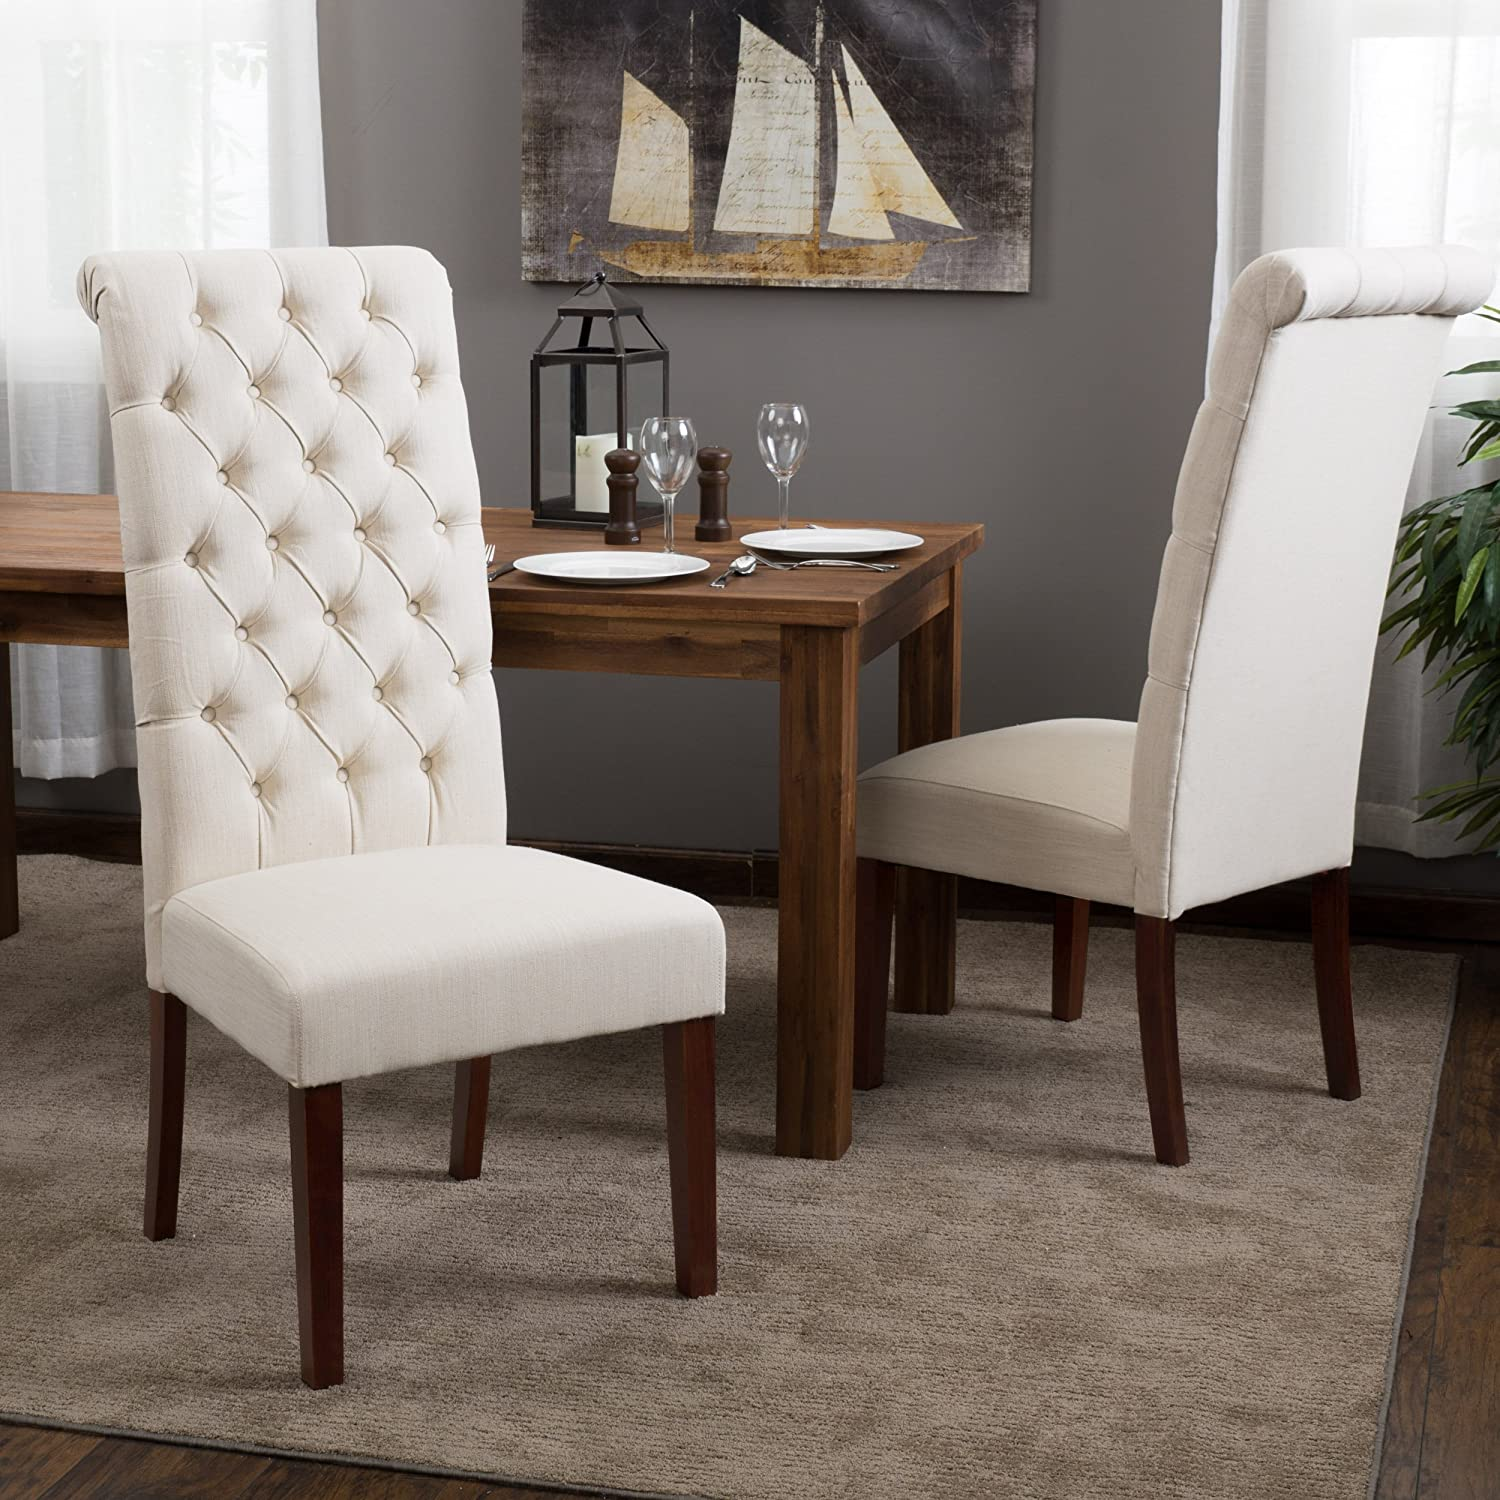 Genial Amazon.com   Best Selling Natural Tall Tufted Dining Chair, 2 Pack   Chairs